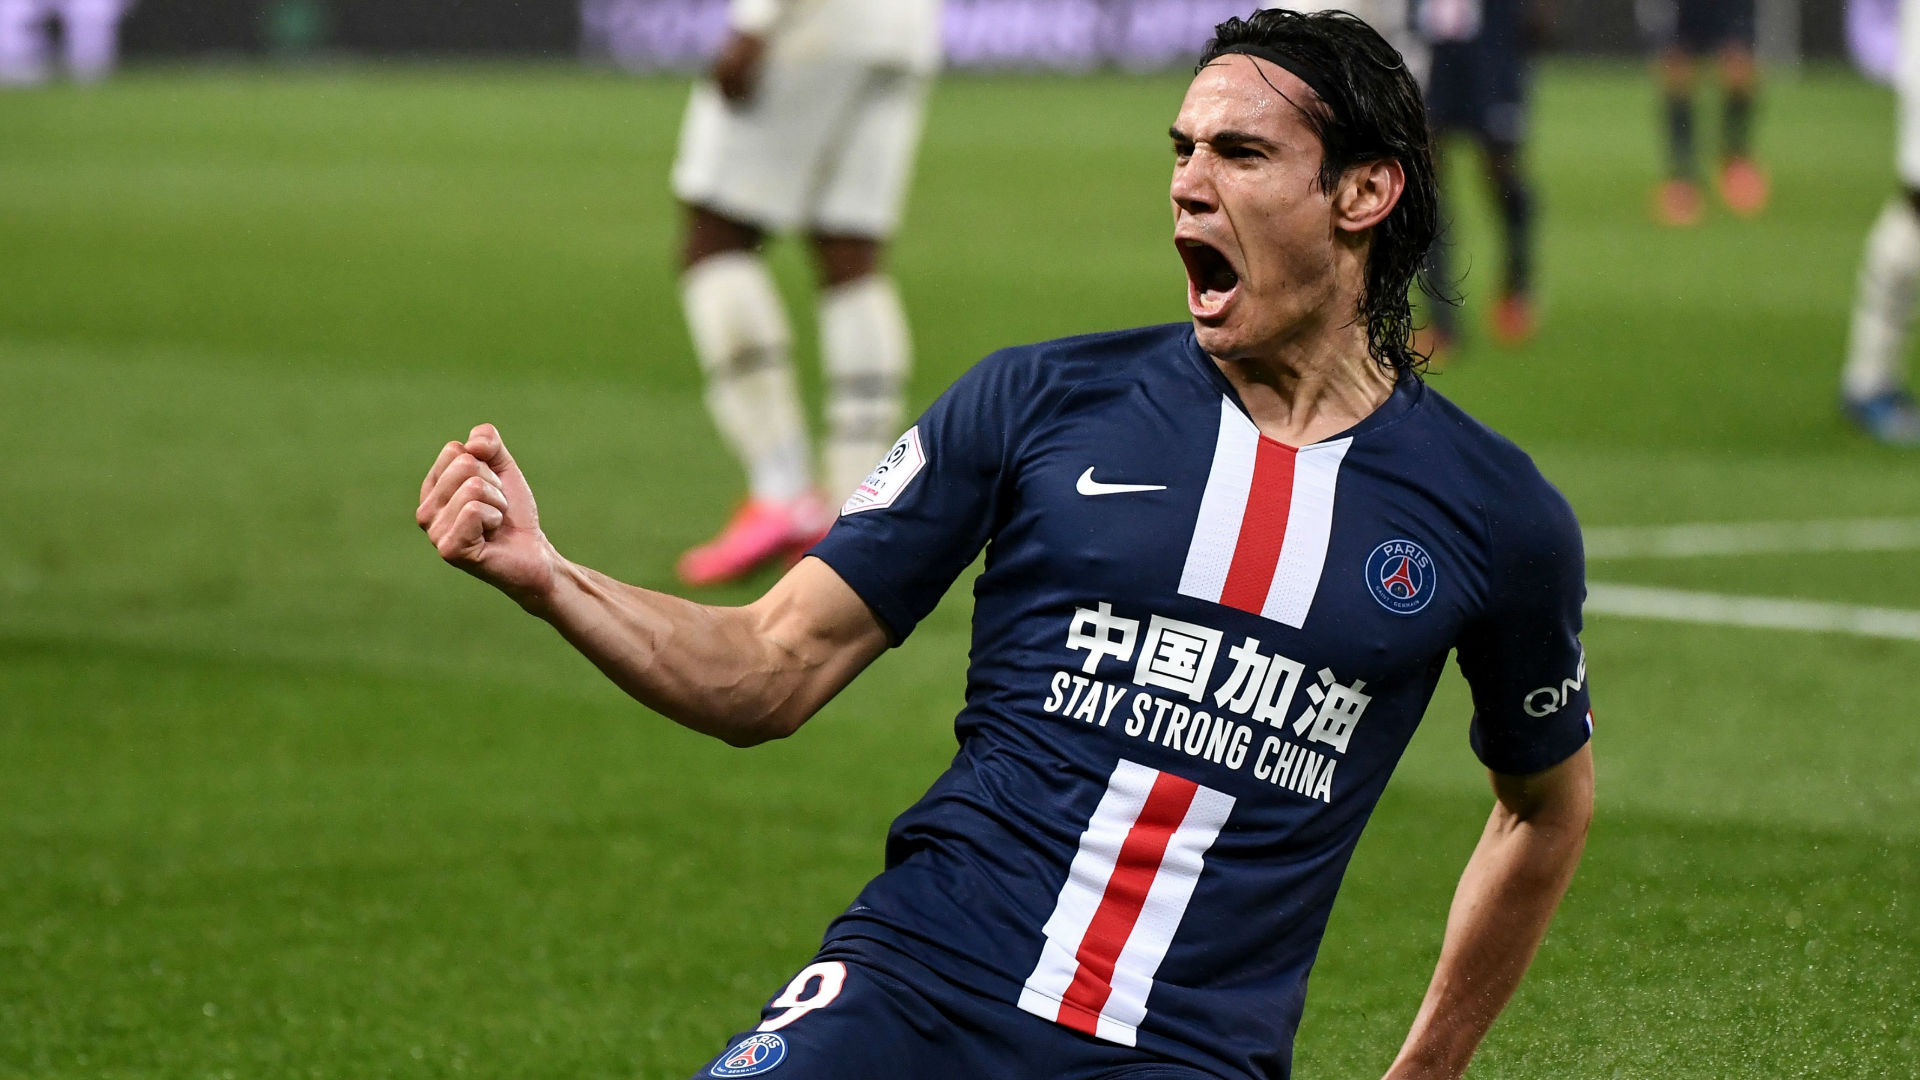 Cavani Becomes First Psg Player To Score 200 Goals For The Club Goal Com